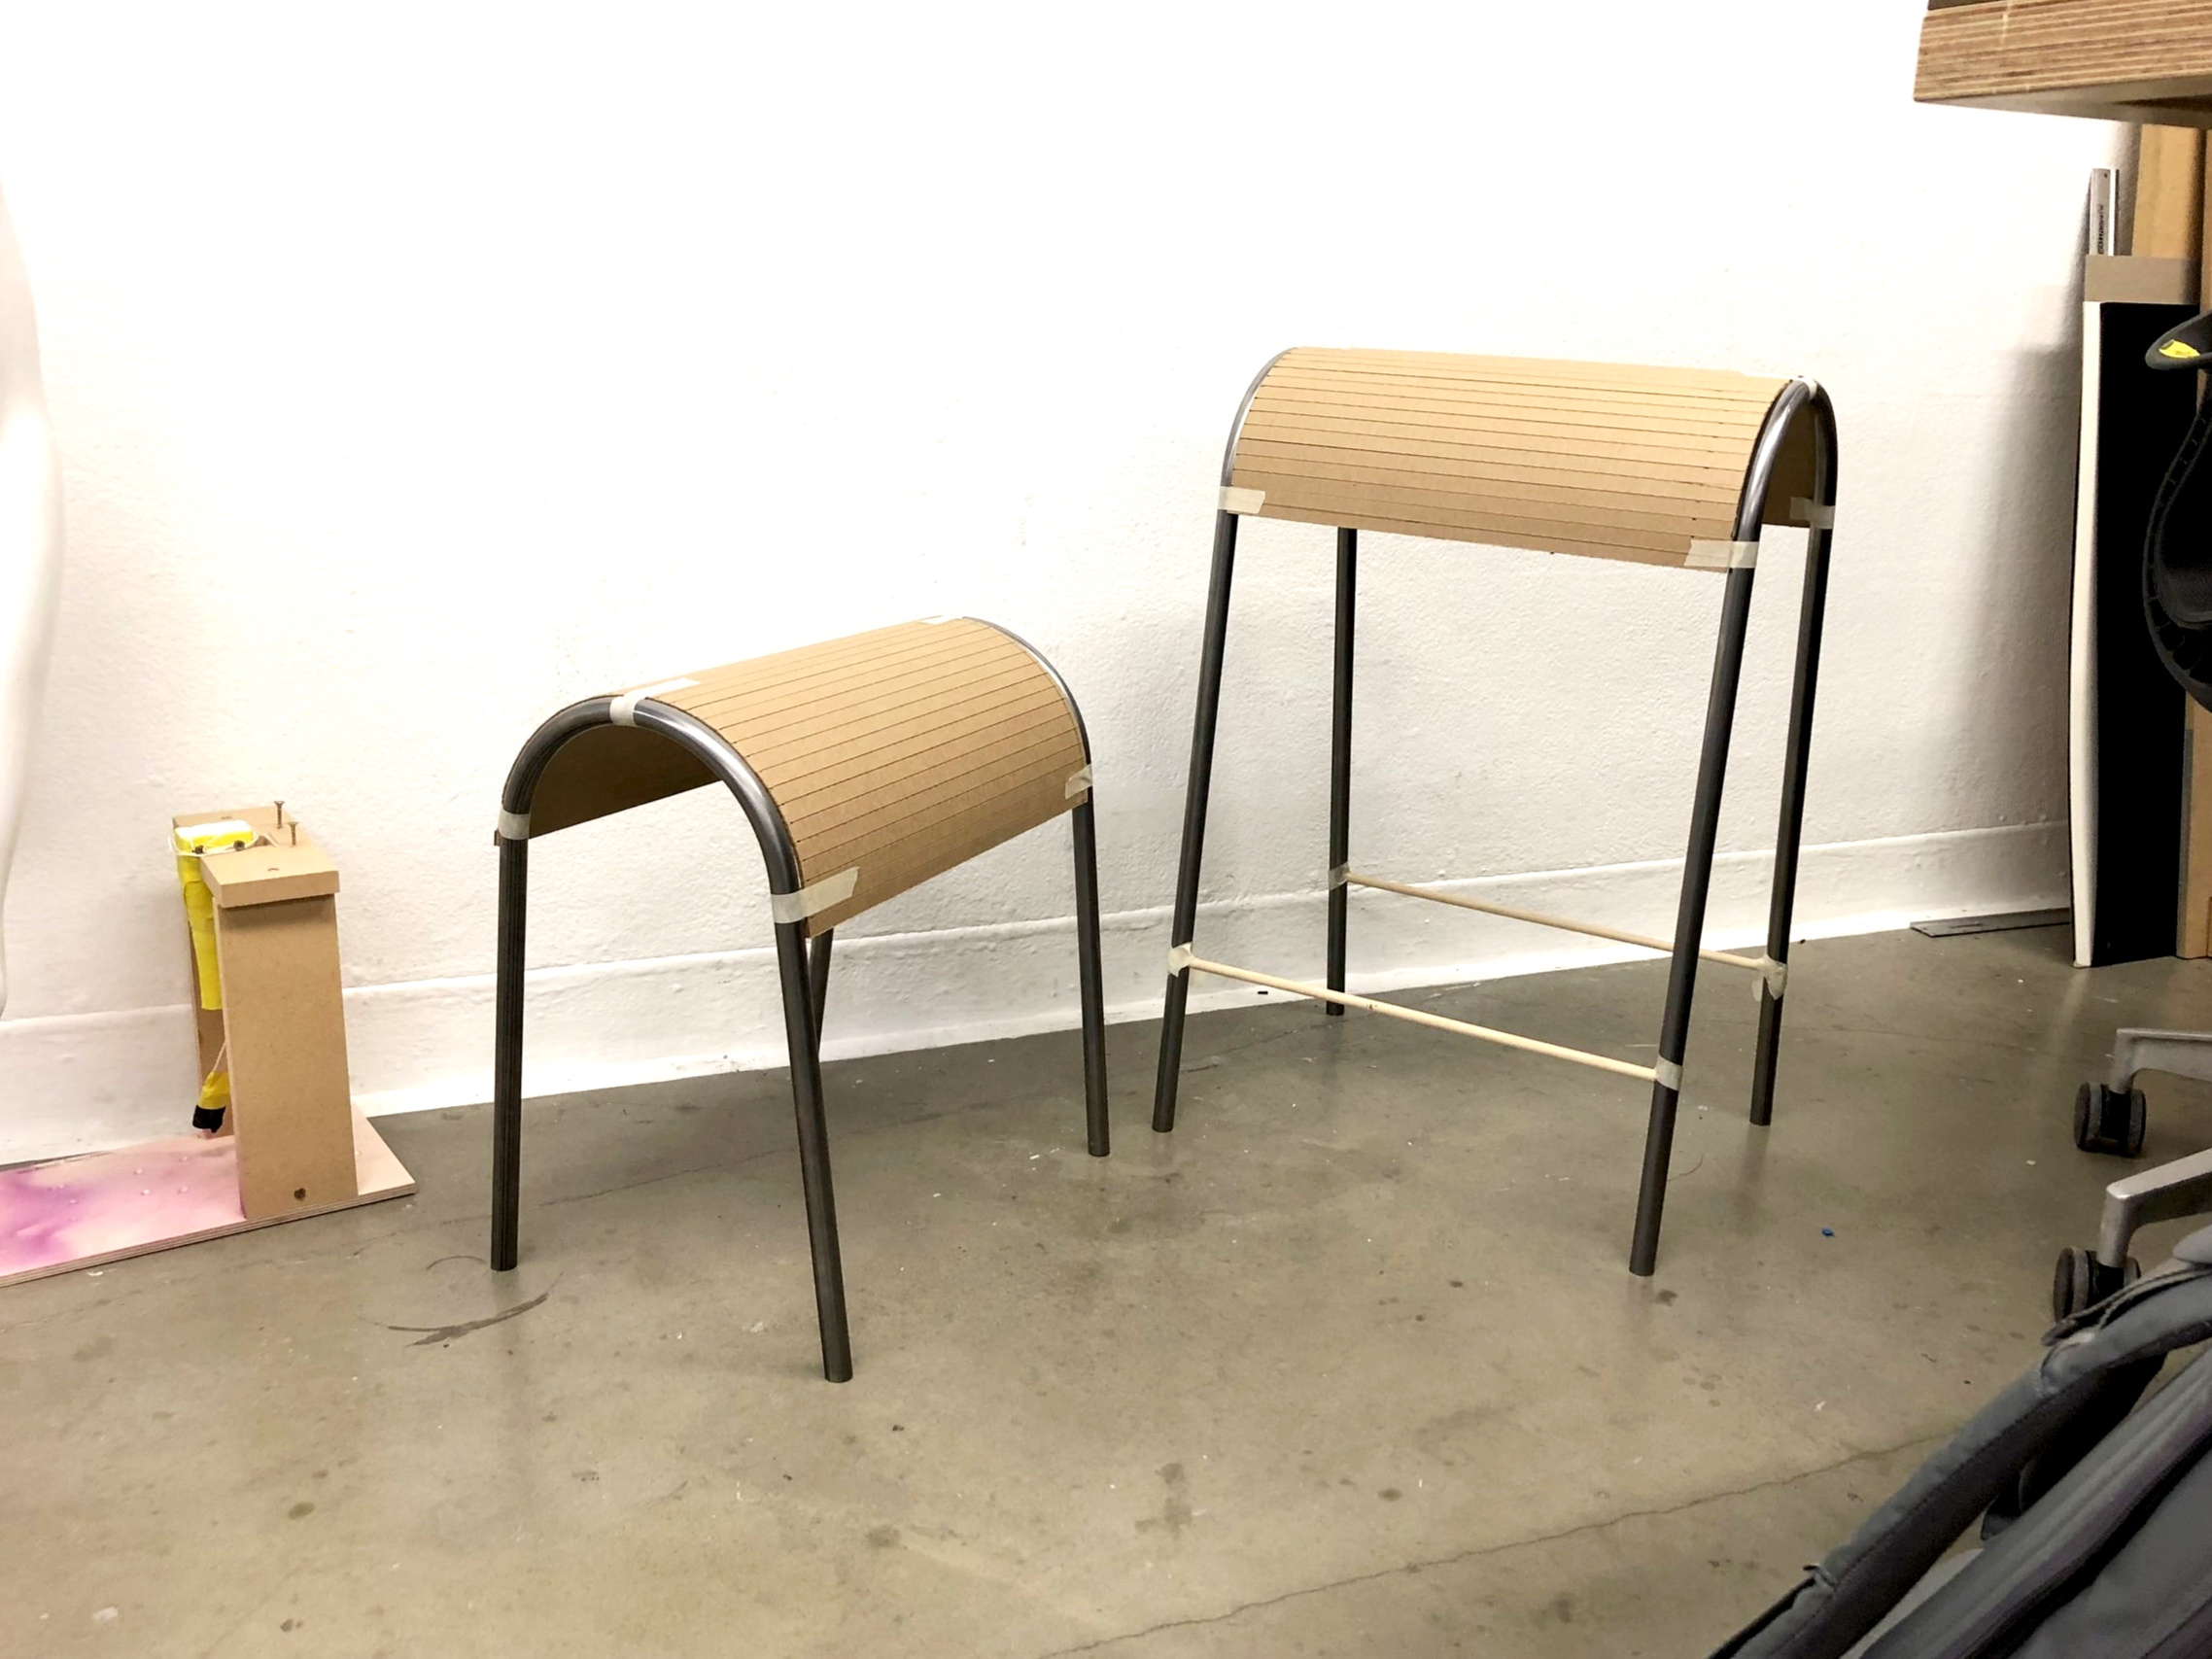 Final in-person specification check up. Used cardboard and wooden dowels to adjust proportions in person. Widened the seat portion to accommodate for more people.